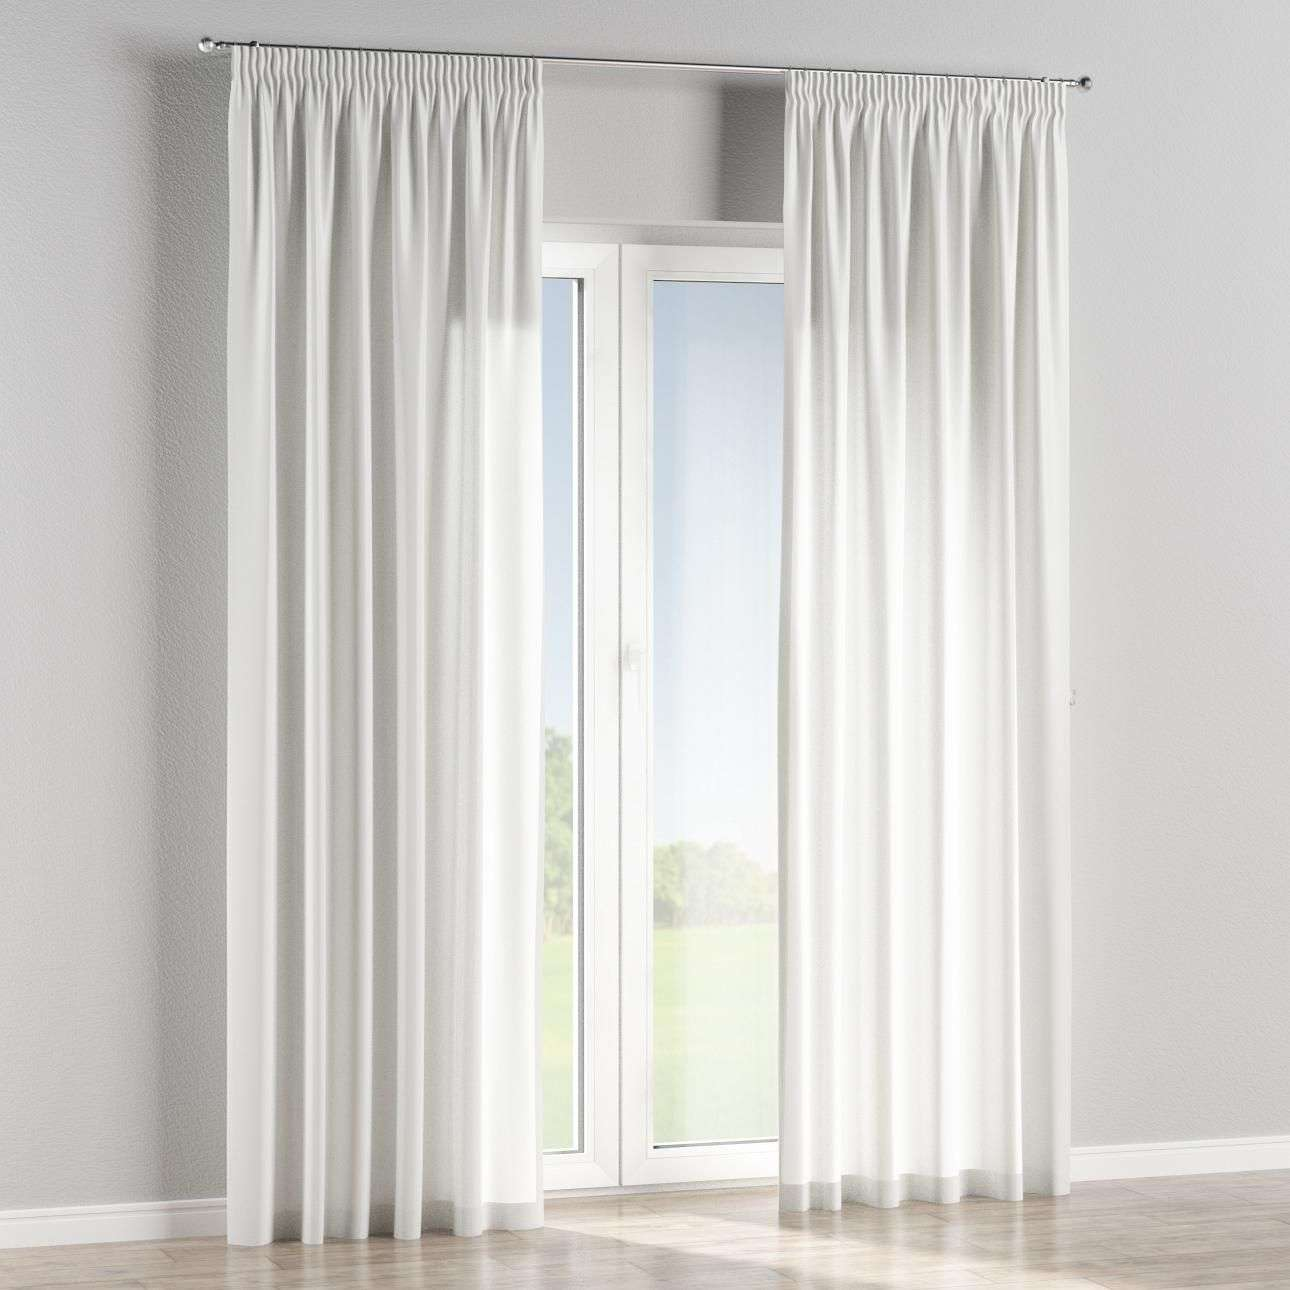 Pencil pleat lined curtains in collection SALE, fabric: 137-44